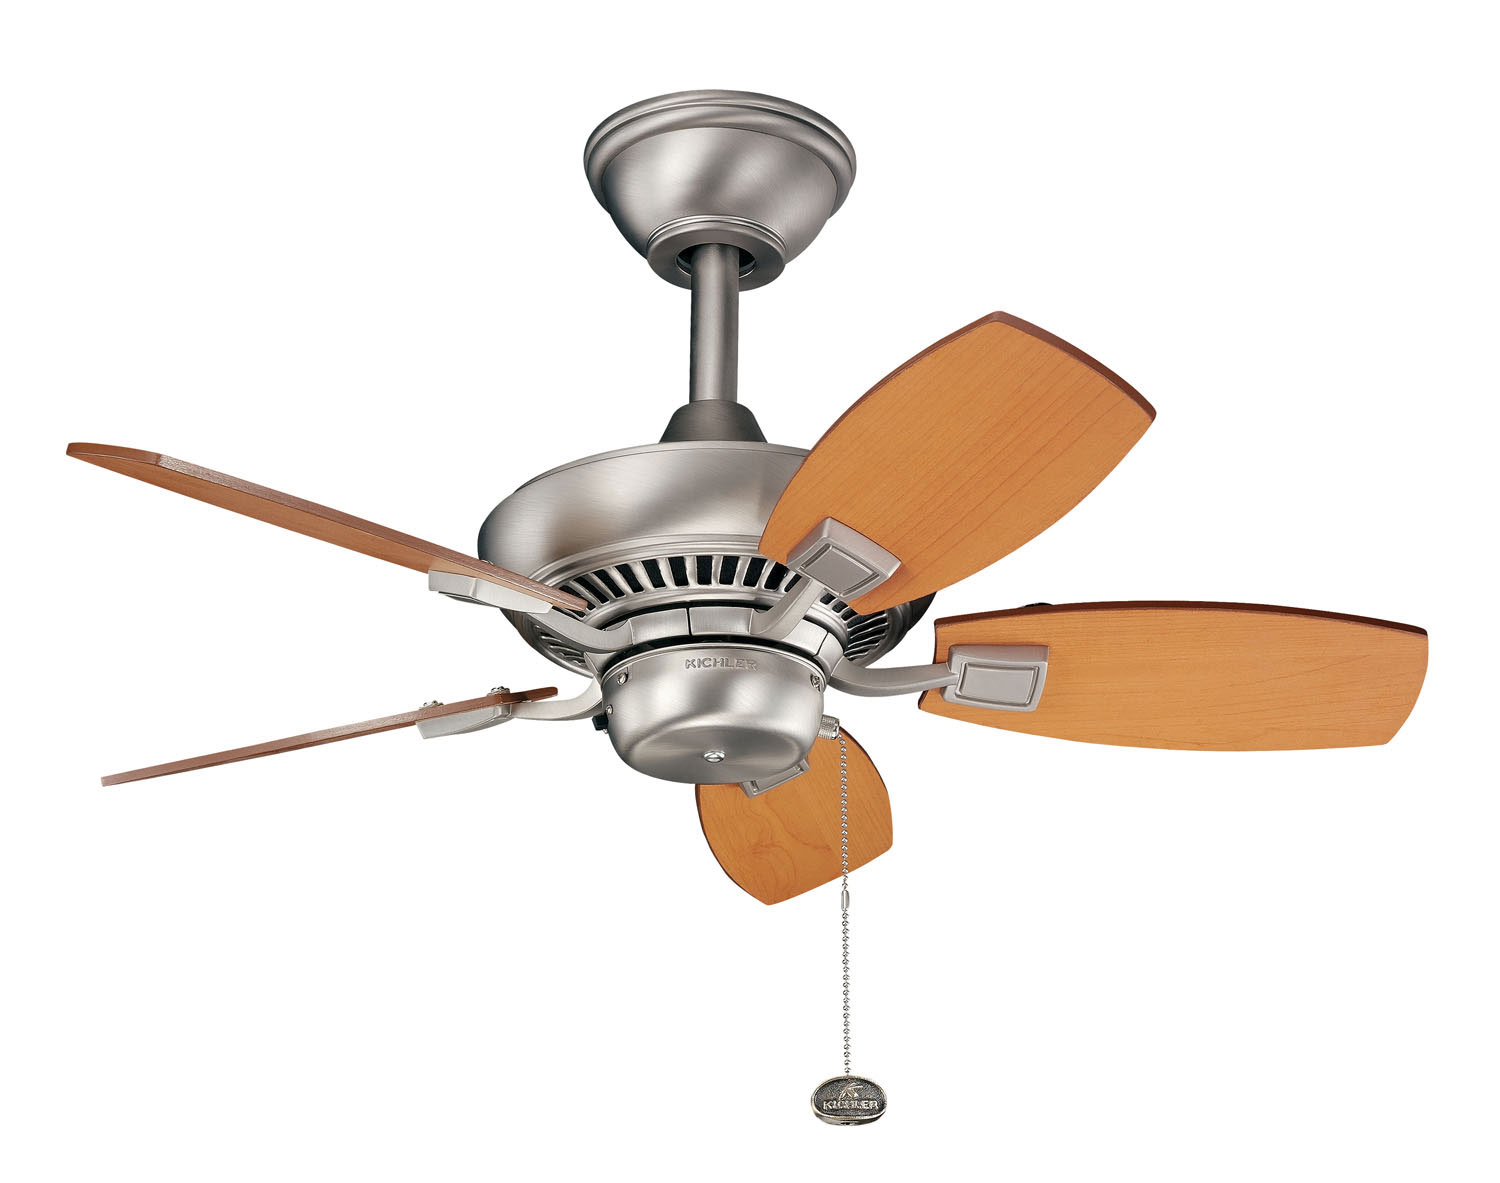 30 inchCeiling Fan from the Canfield collection by Kichler 300103NI